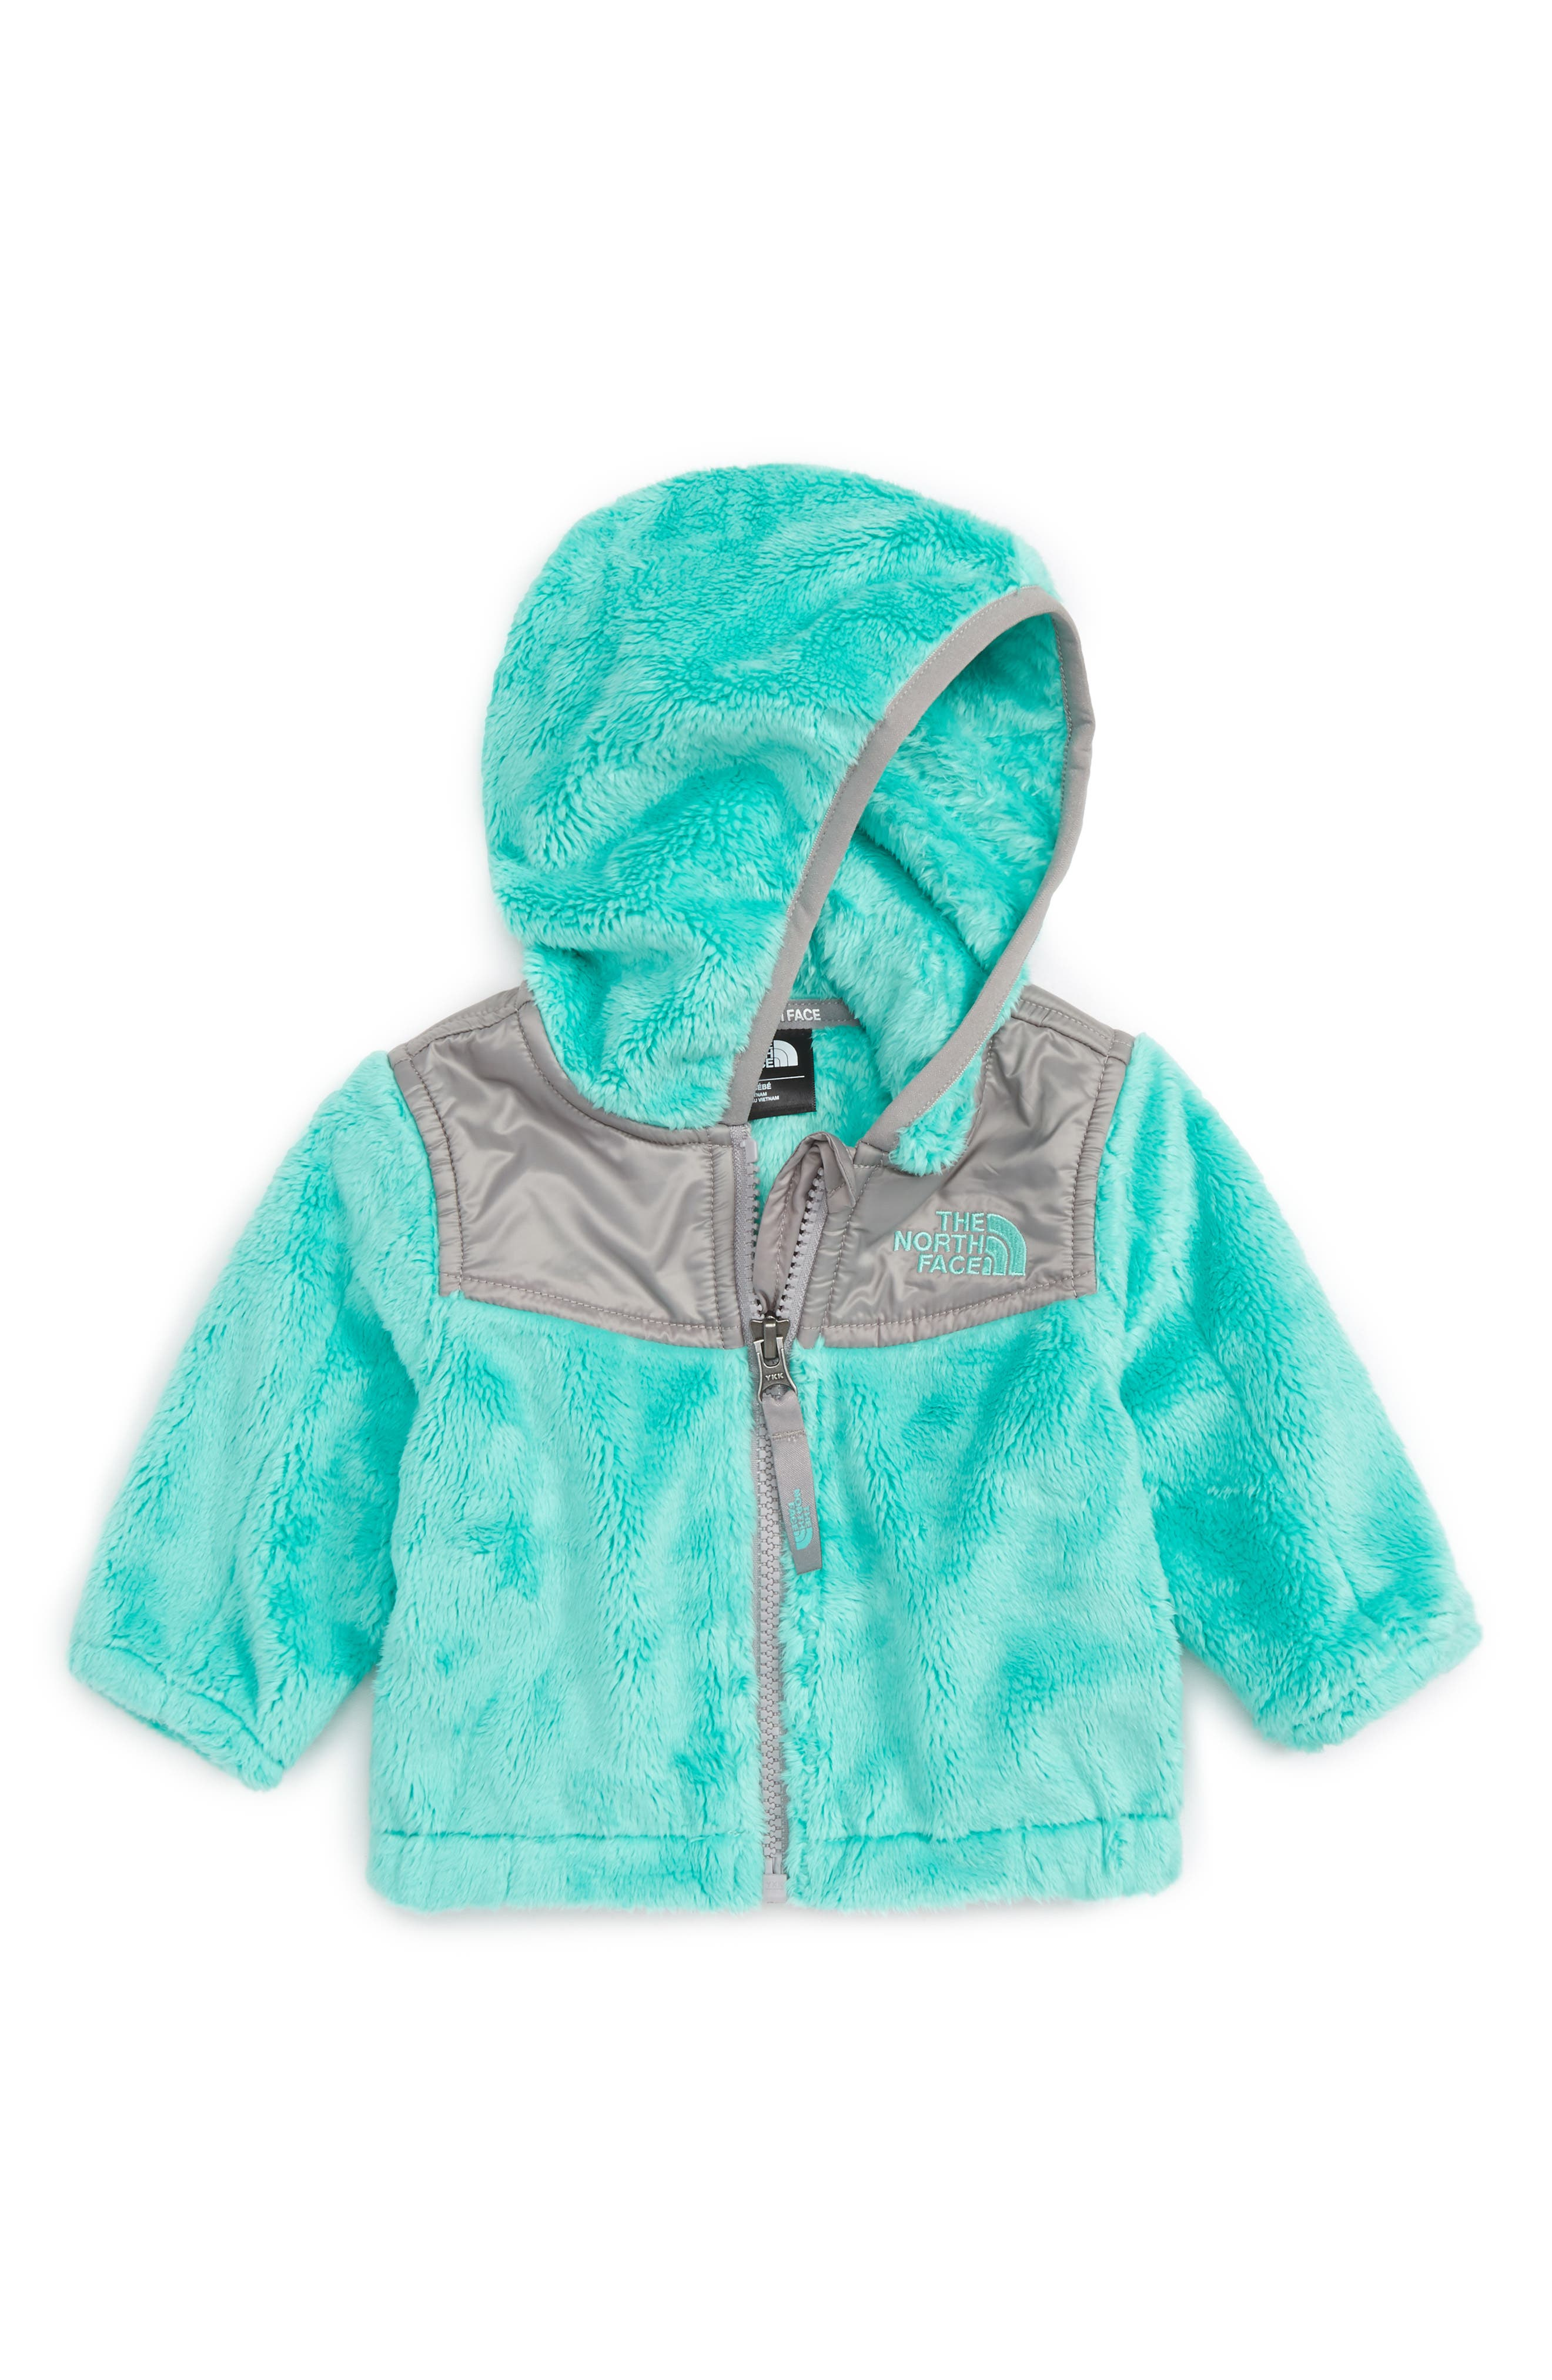 Main Image - The North Face 'Oso' Fleece Hooded Jacket (Baby Girls)